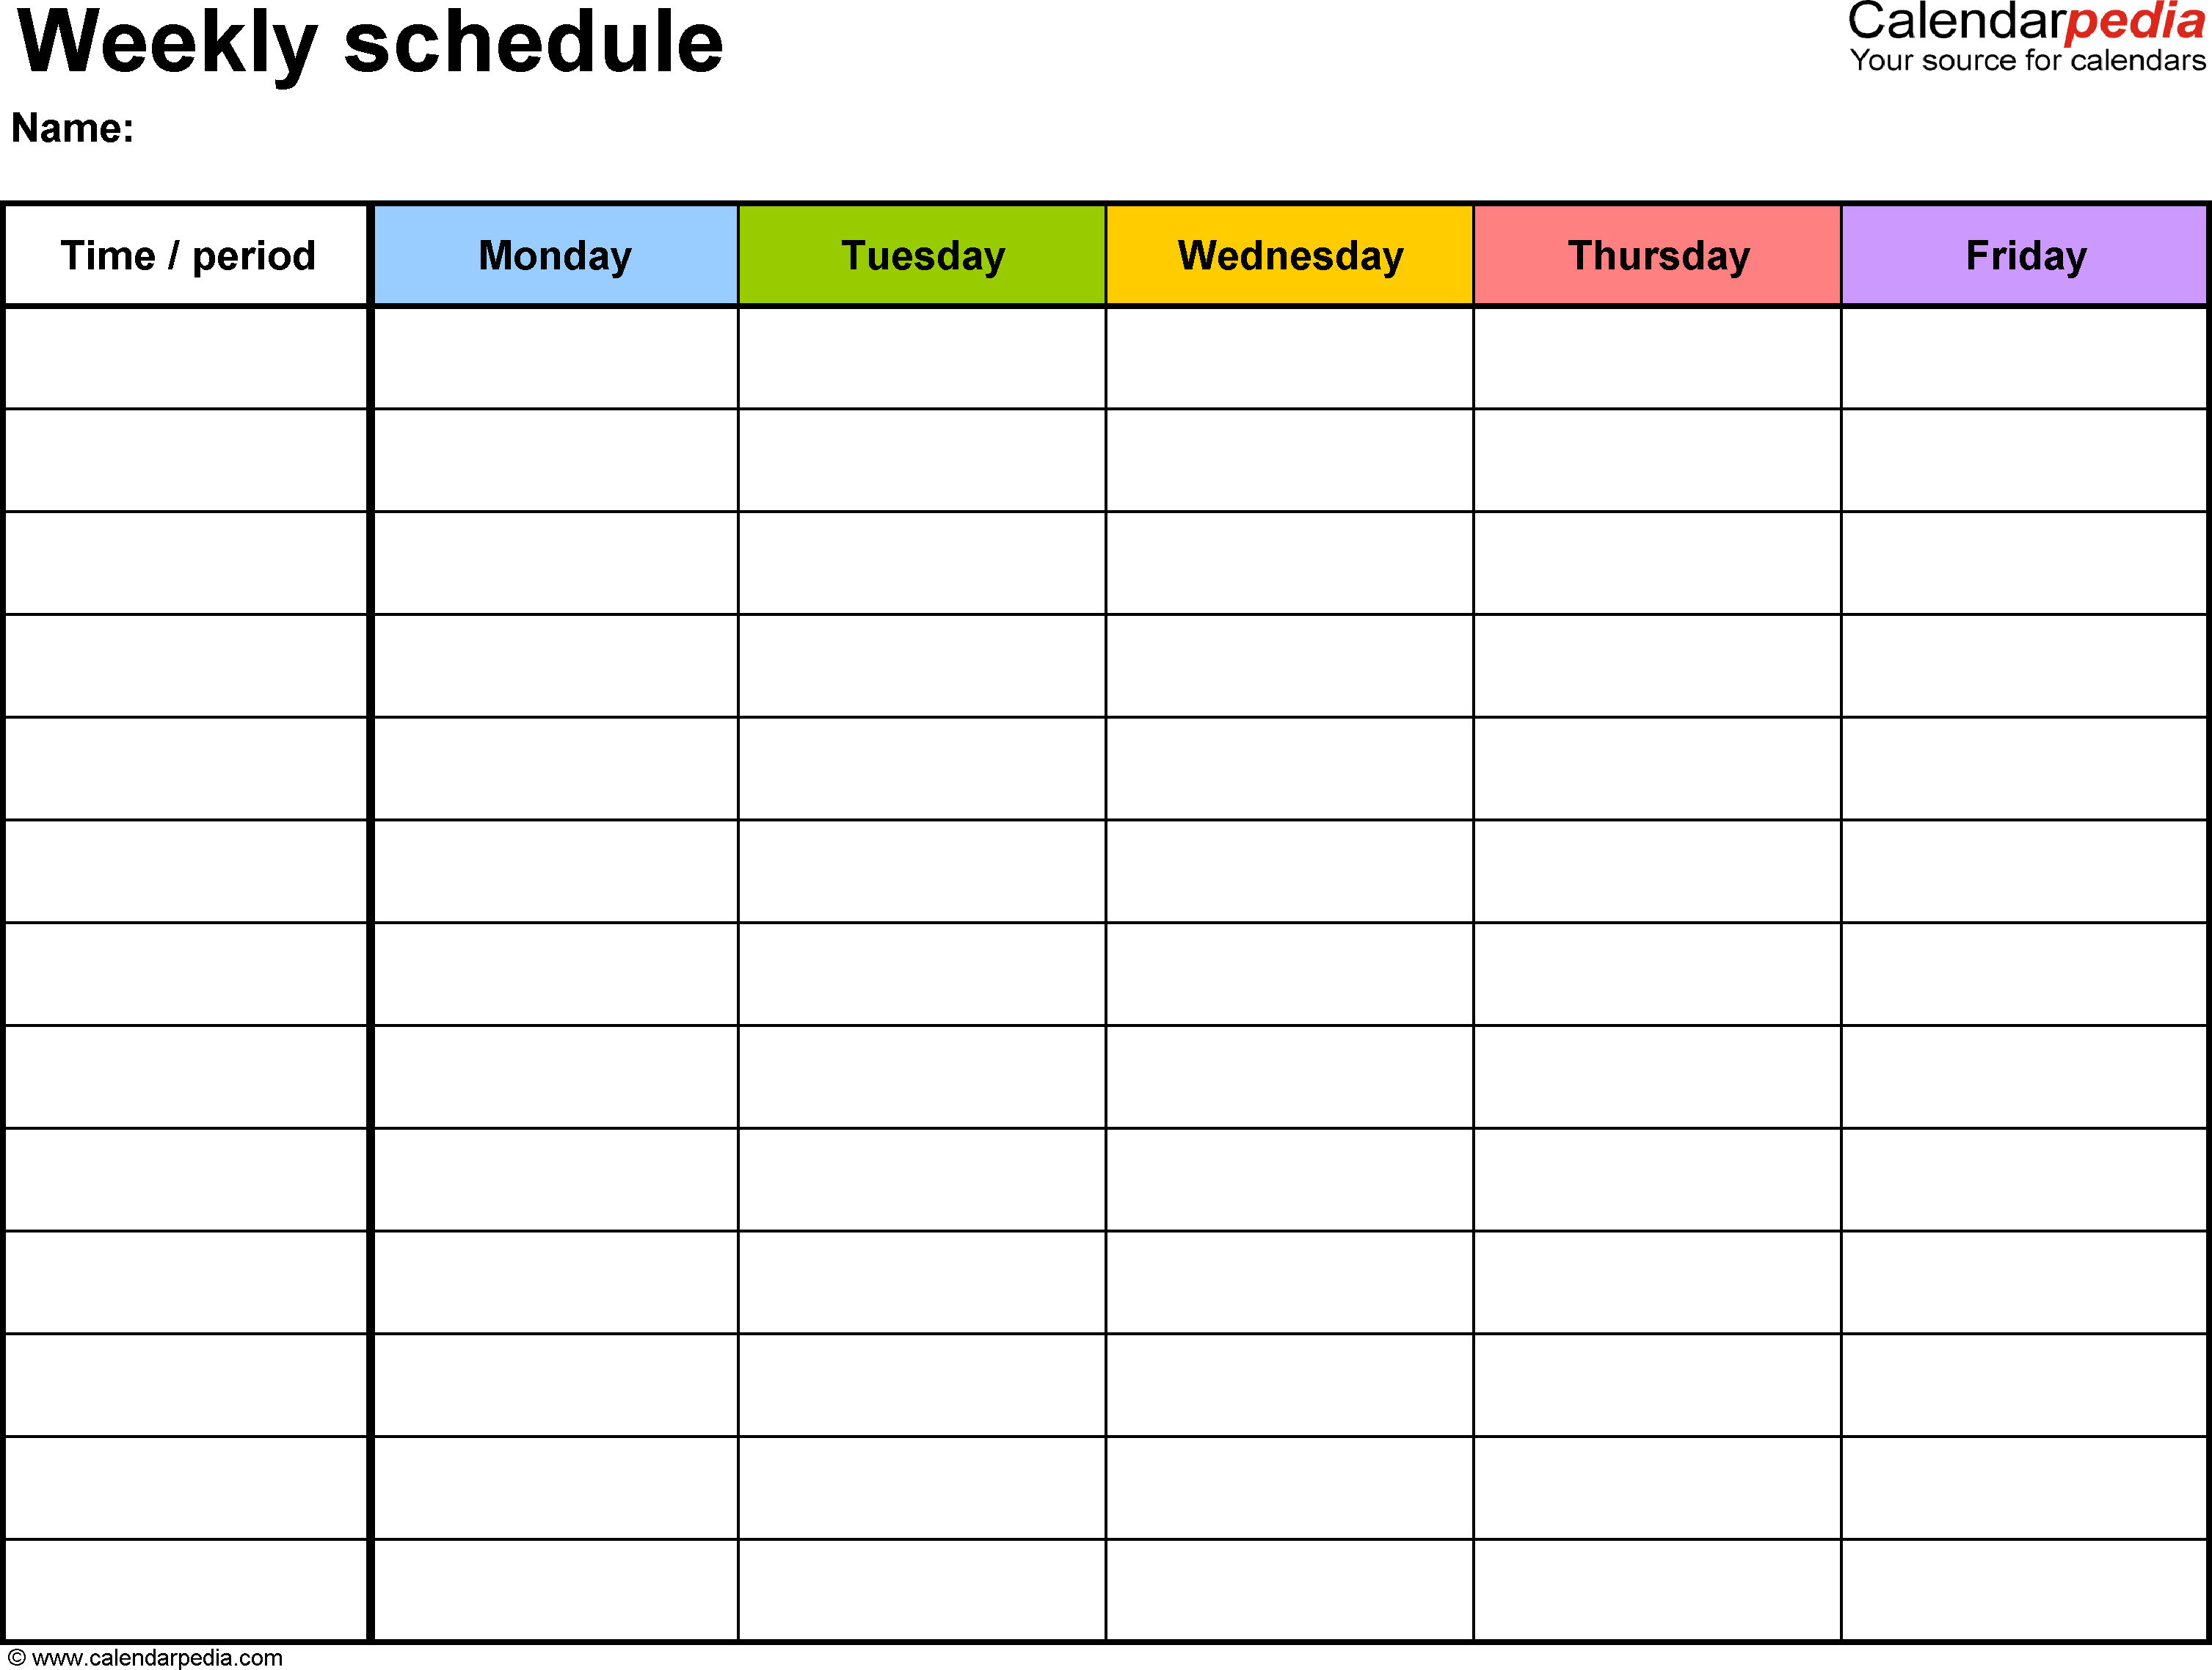 Free Weekly Schedule Templates For Word  18 Templates for 5 Days A Week Planner